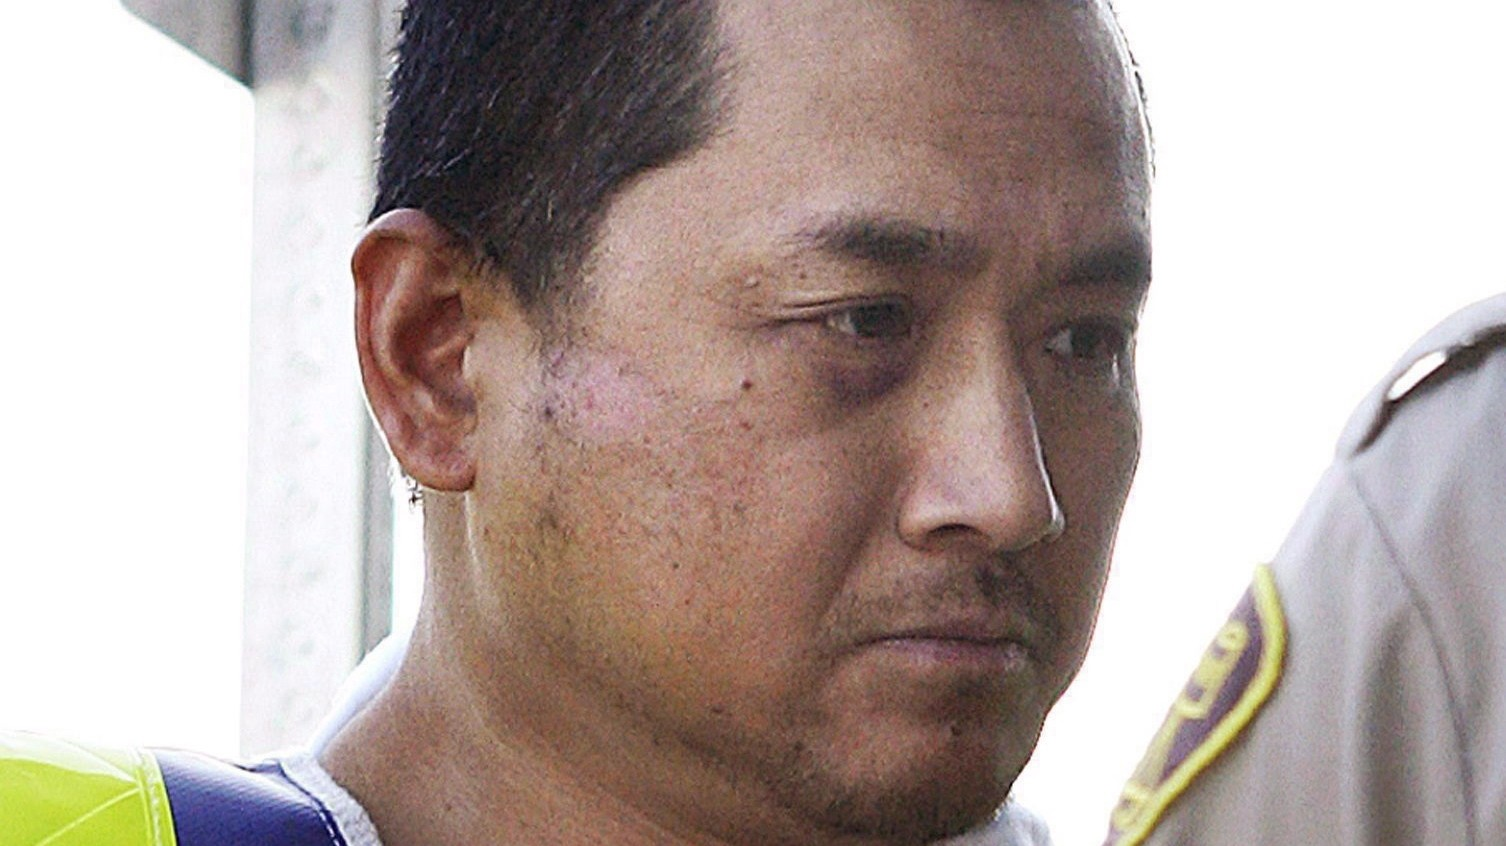 A Man Who Beheaded a Bus Passenger in Canada Is Allowed to Live on His Own Now